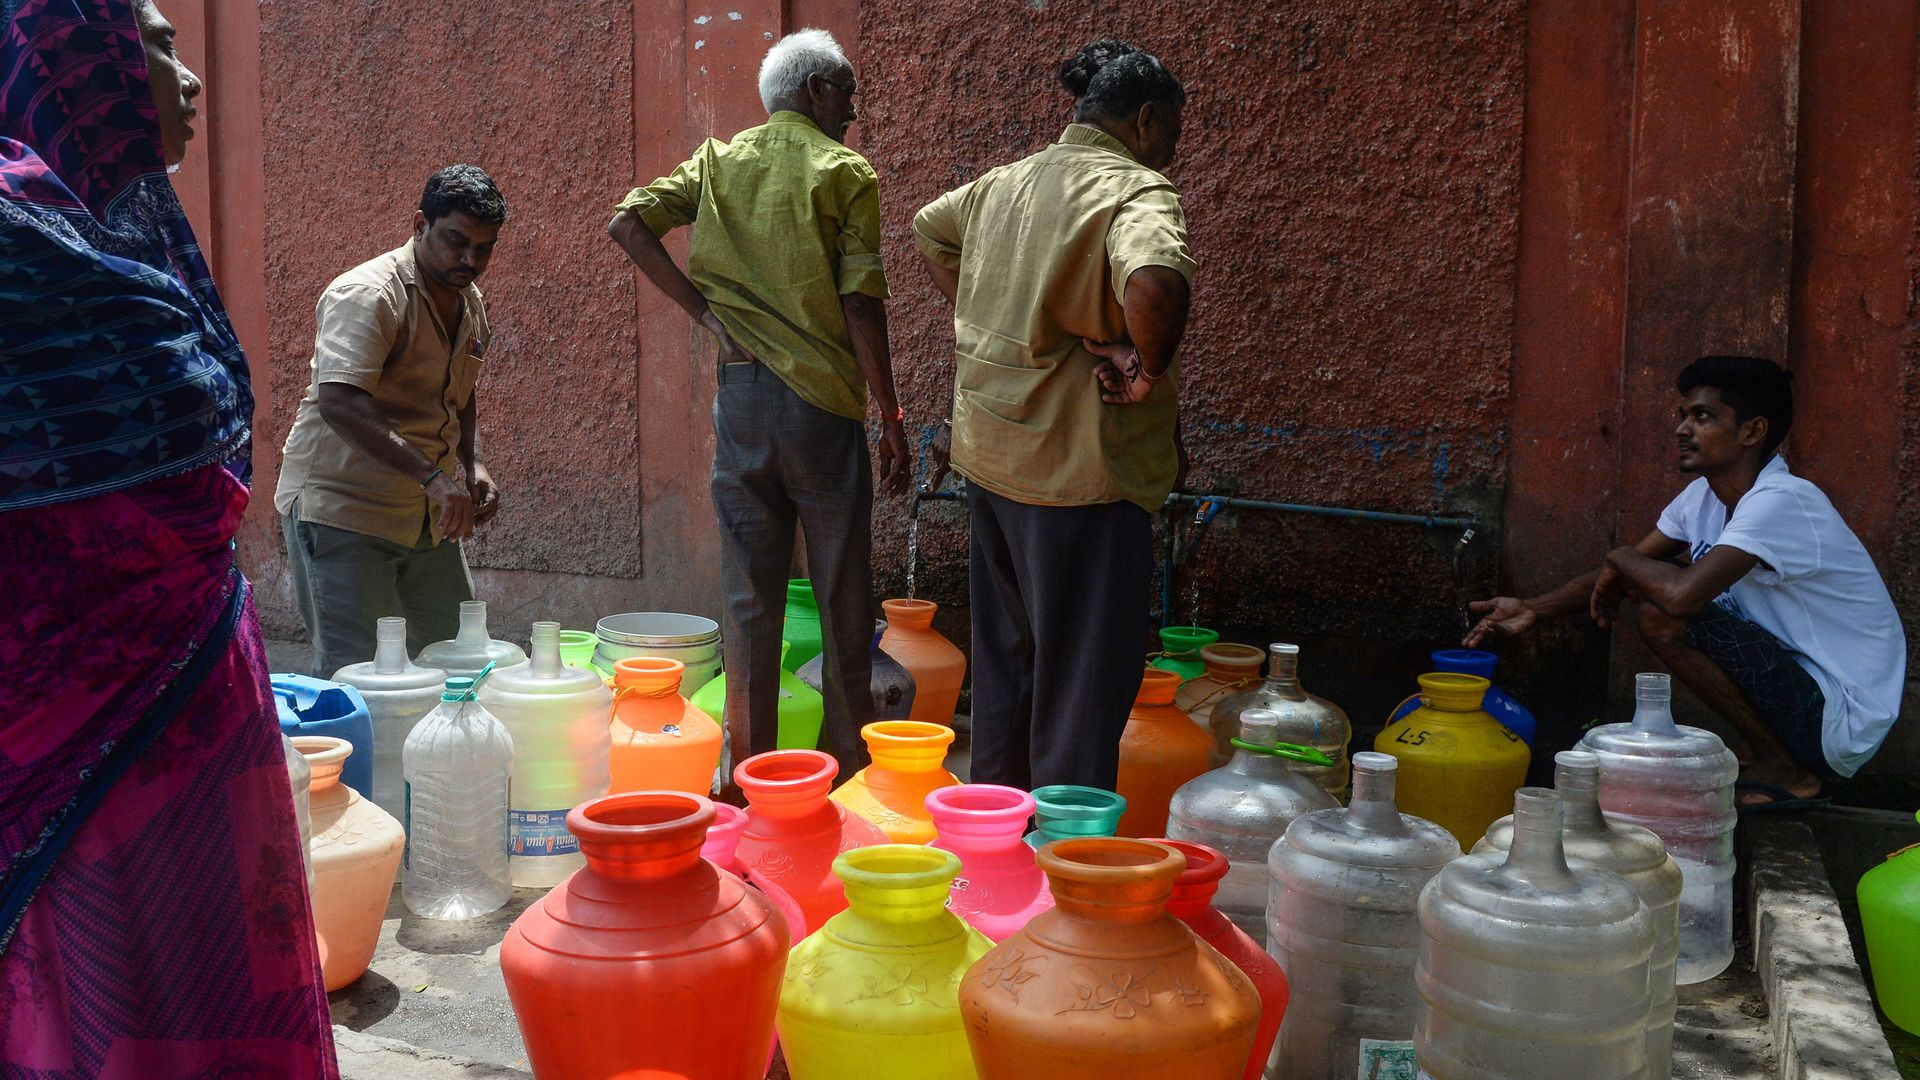 Chennai water crisis leaves millions in India struggling for access